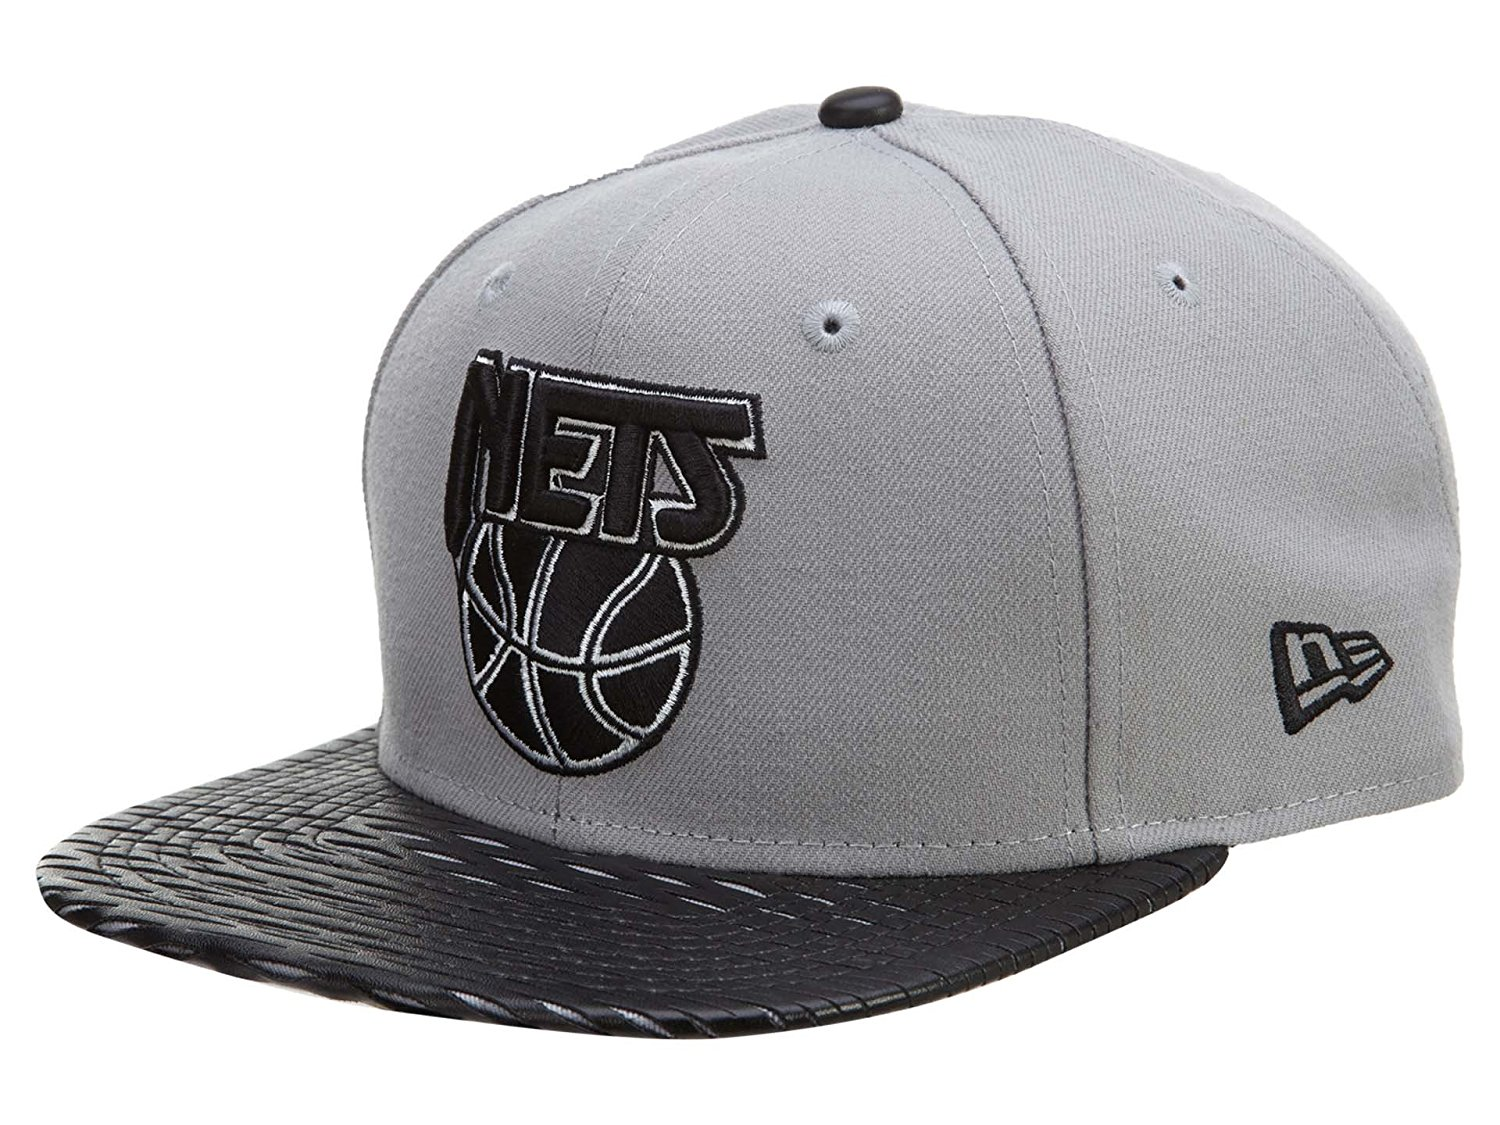 Get Quotations · NBA New Era 9Fifty 950 Leather Rip Brooklyn Nets Snapback  Hat Cap Flat Bill Gray b714ebe94